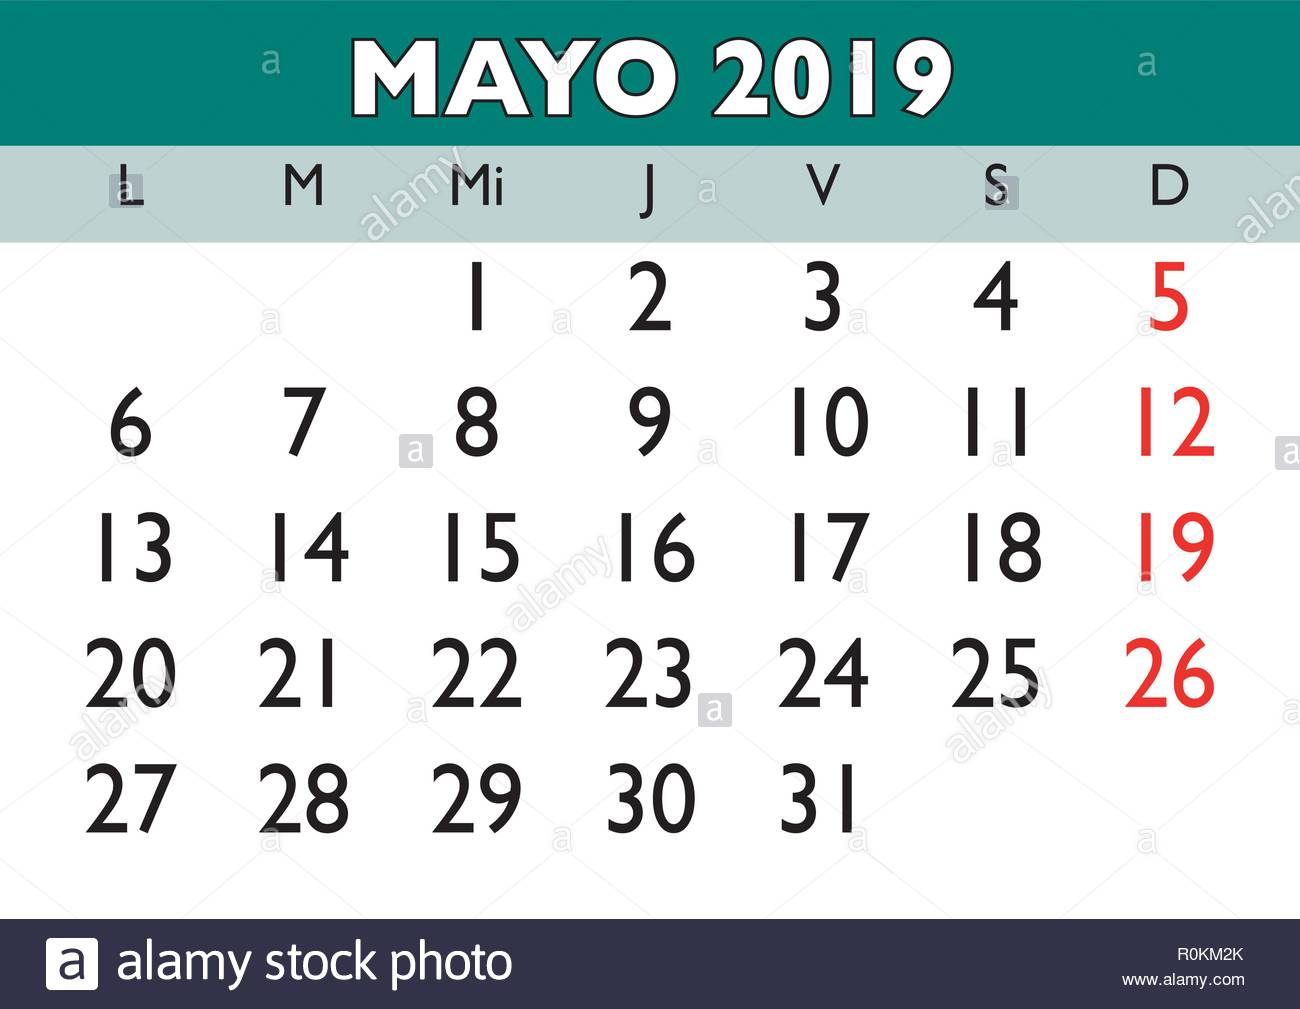 Calendario Vector.May Month In A Year 2019 Wall Calendar In Spanish Mayo 2019